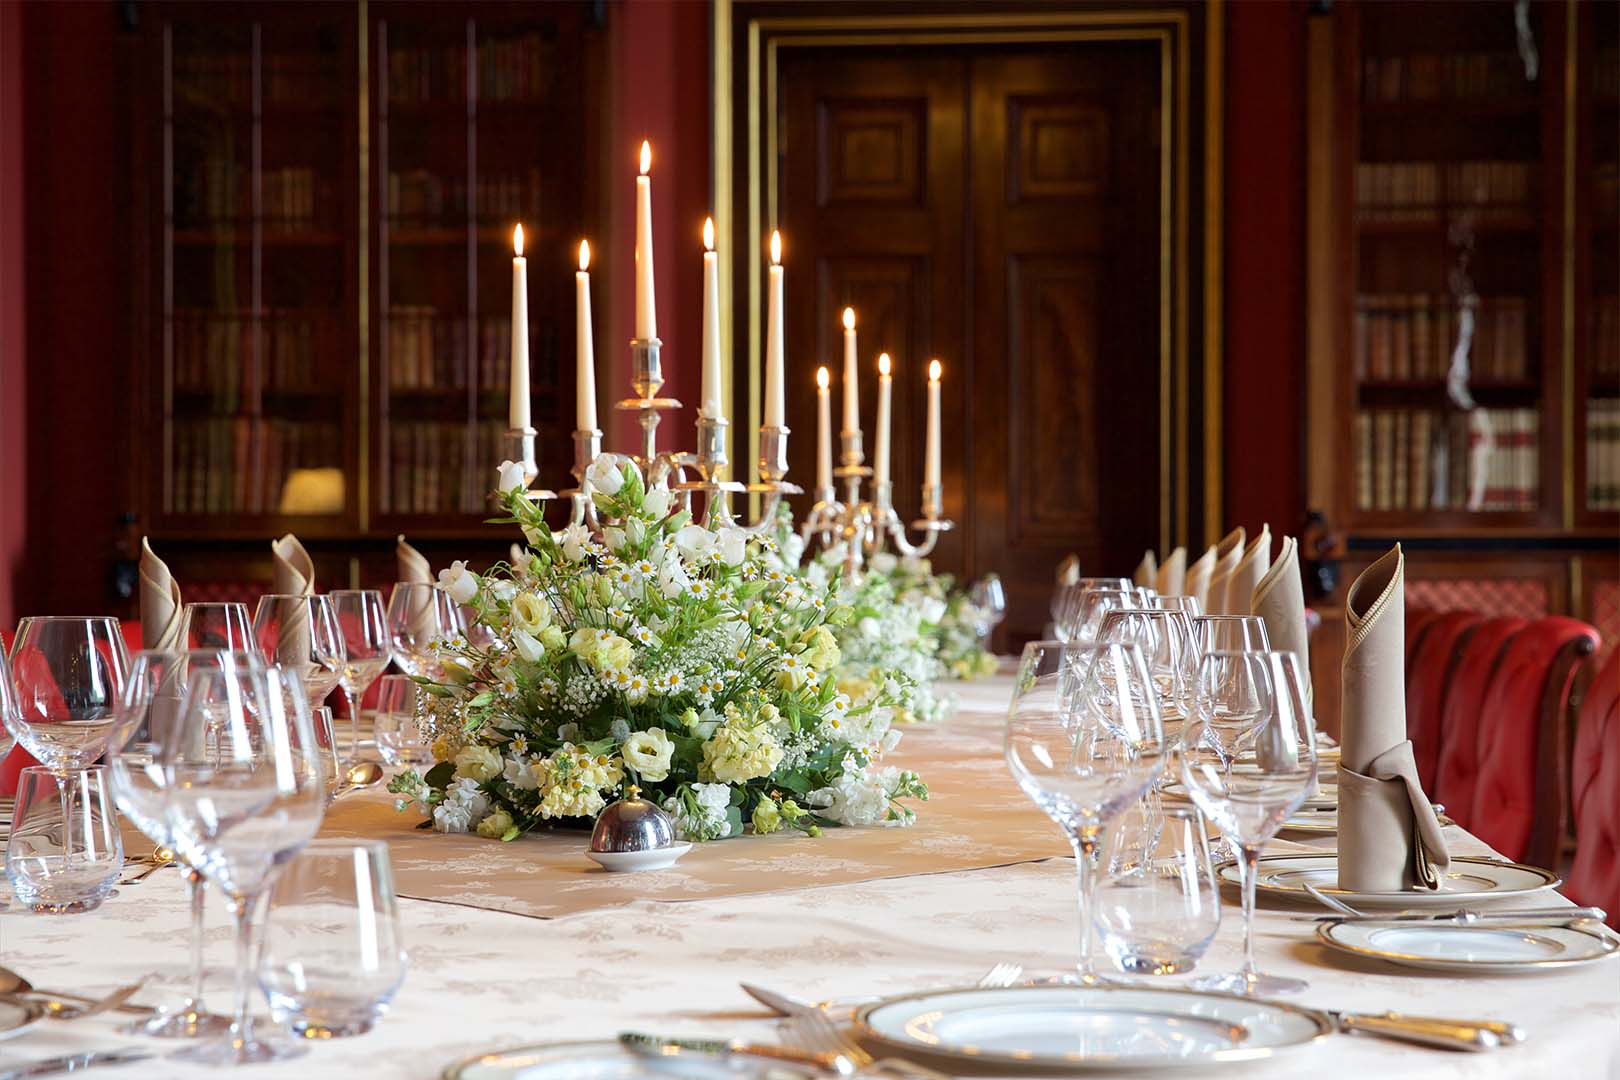 <p>An intimate and cosy setting, the Londonderry room is perfect for pre-wedding dinners and celebrations.</p>